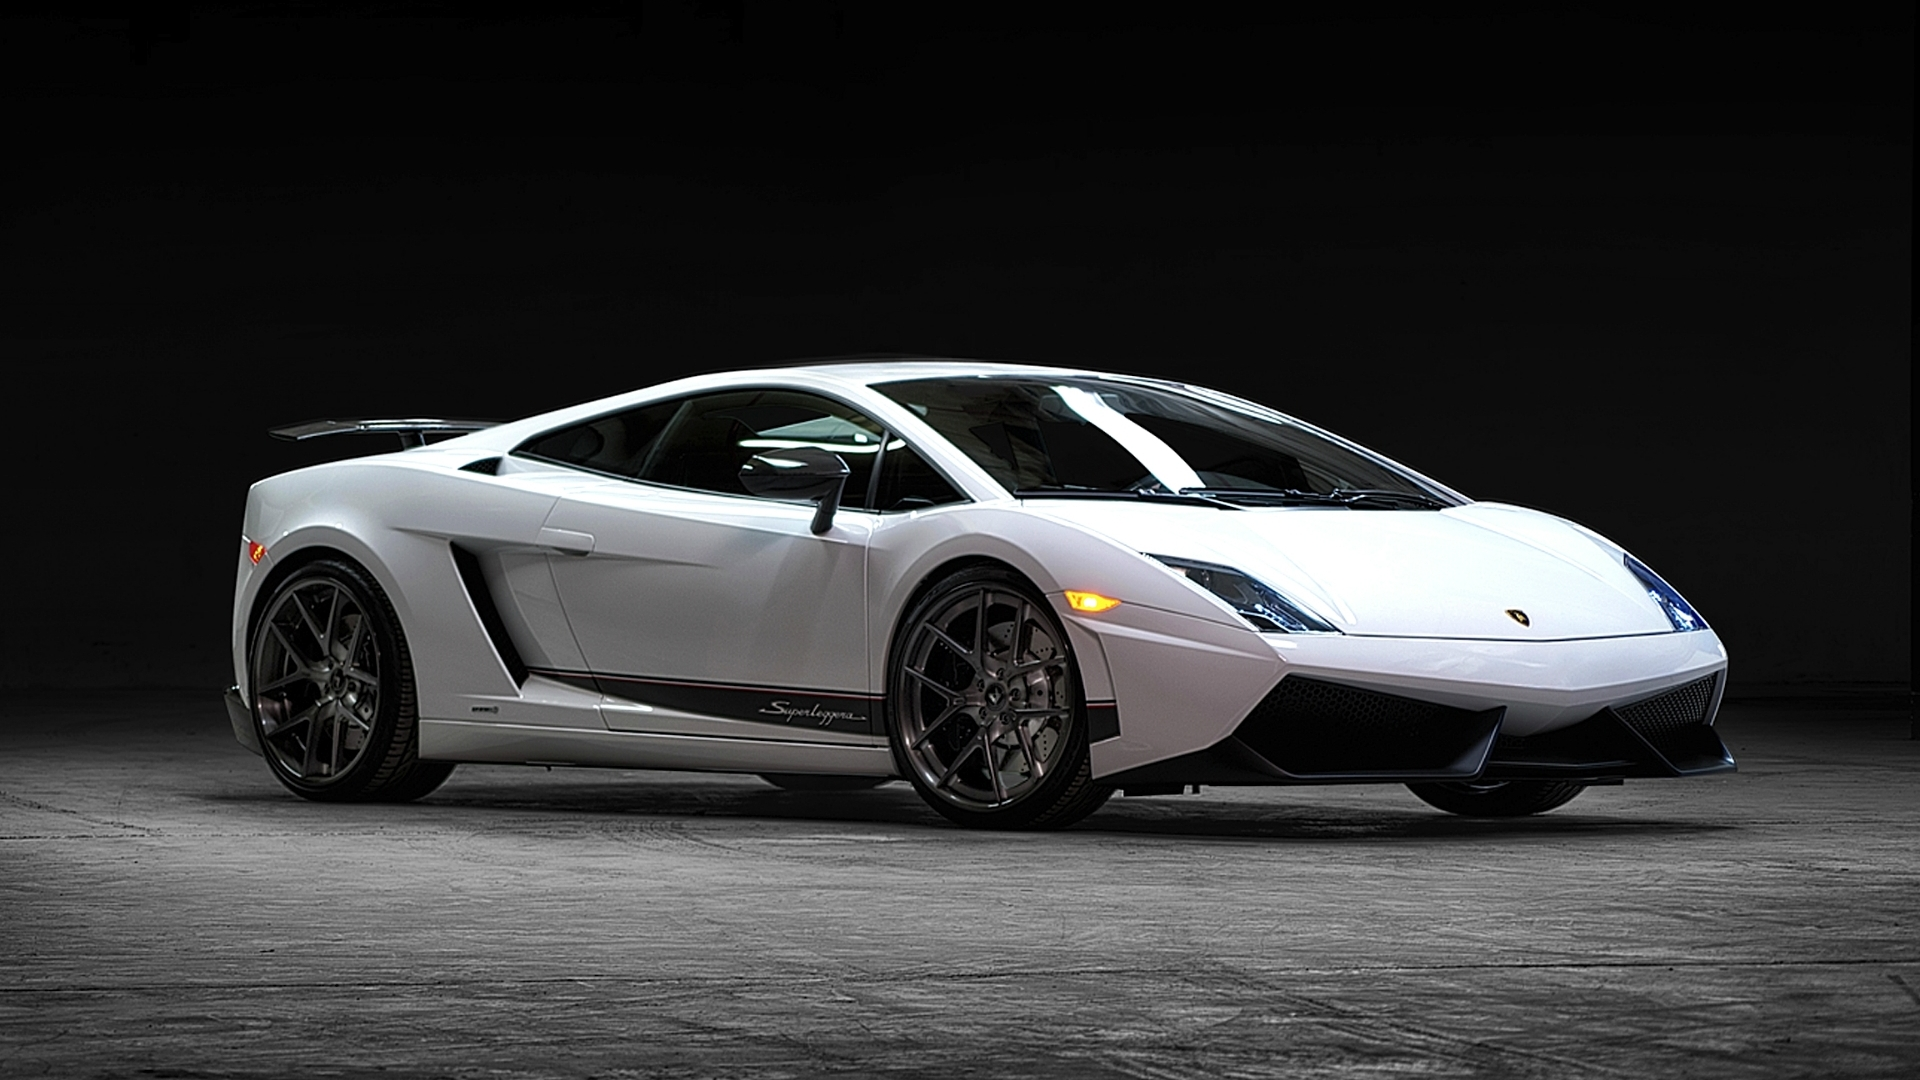 lamborghini gallardo wallpapers hd wallpaper with 1920x1080 resolution - Lamborghini Gallardo Wallpaper Blue